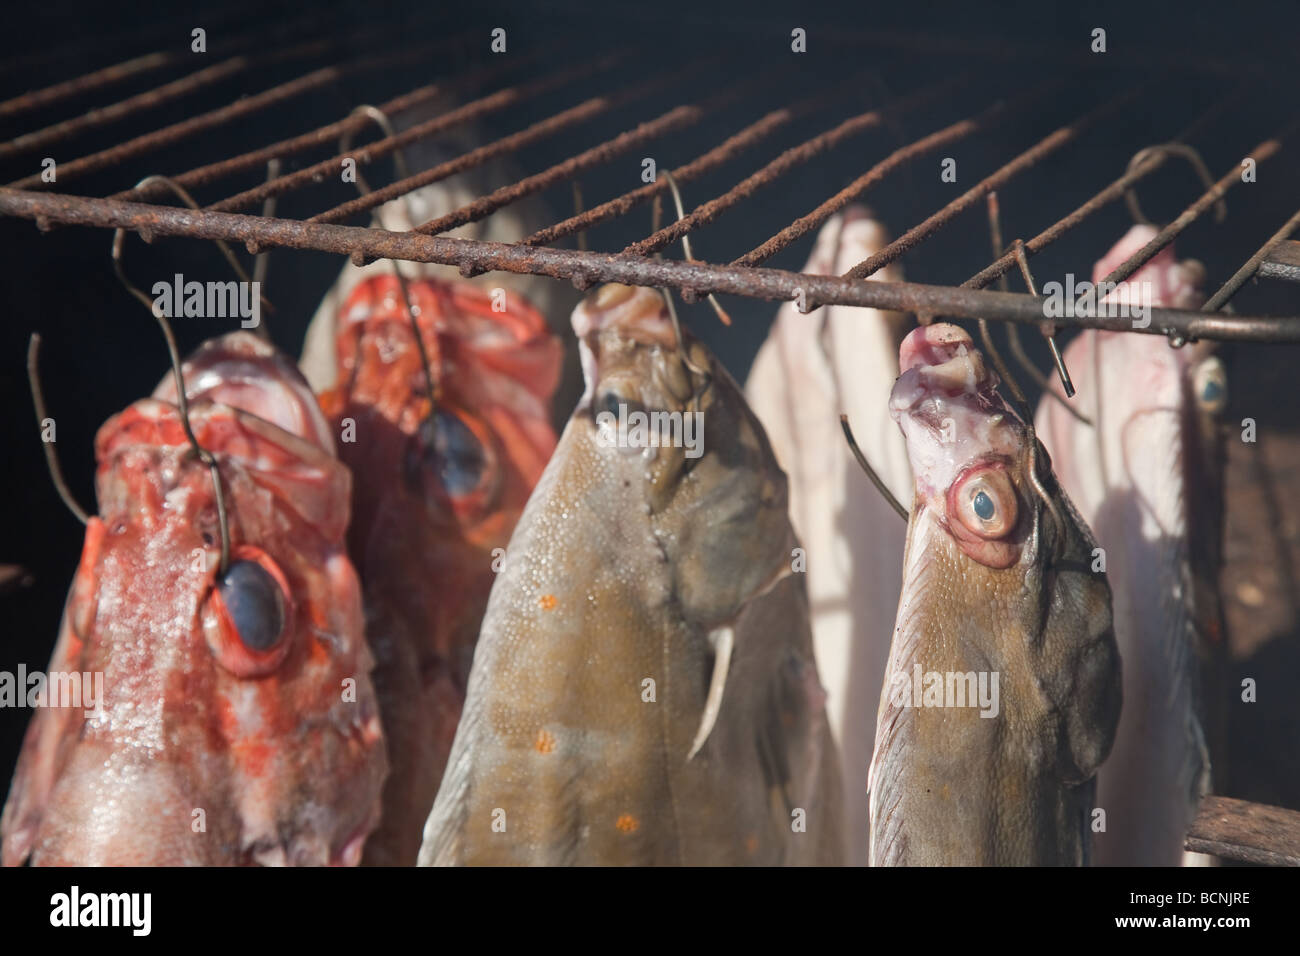 Smoked flatfish turbot and sea perch in home made fumigate oven - Stock Image